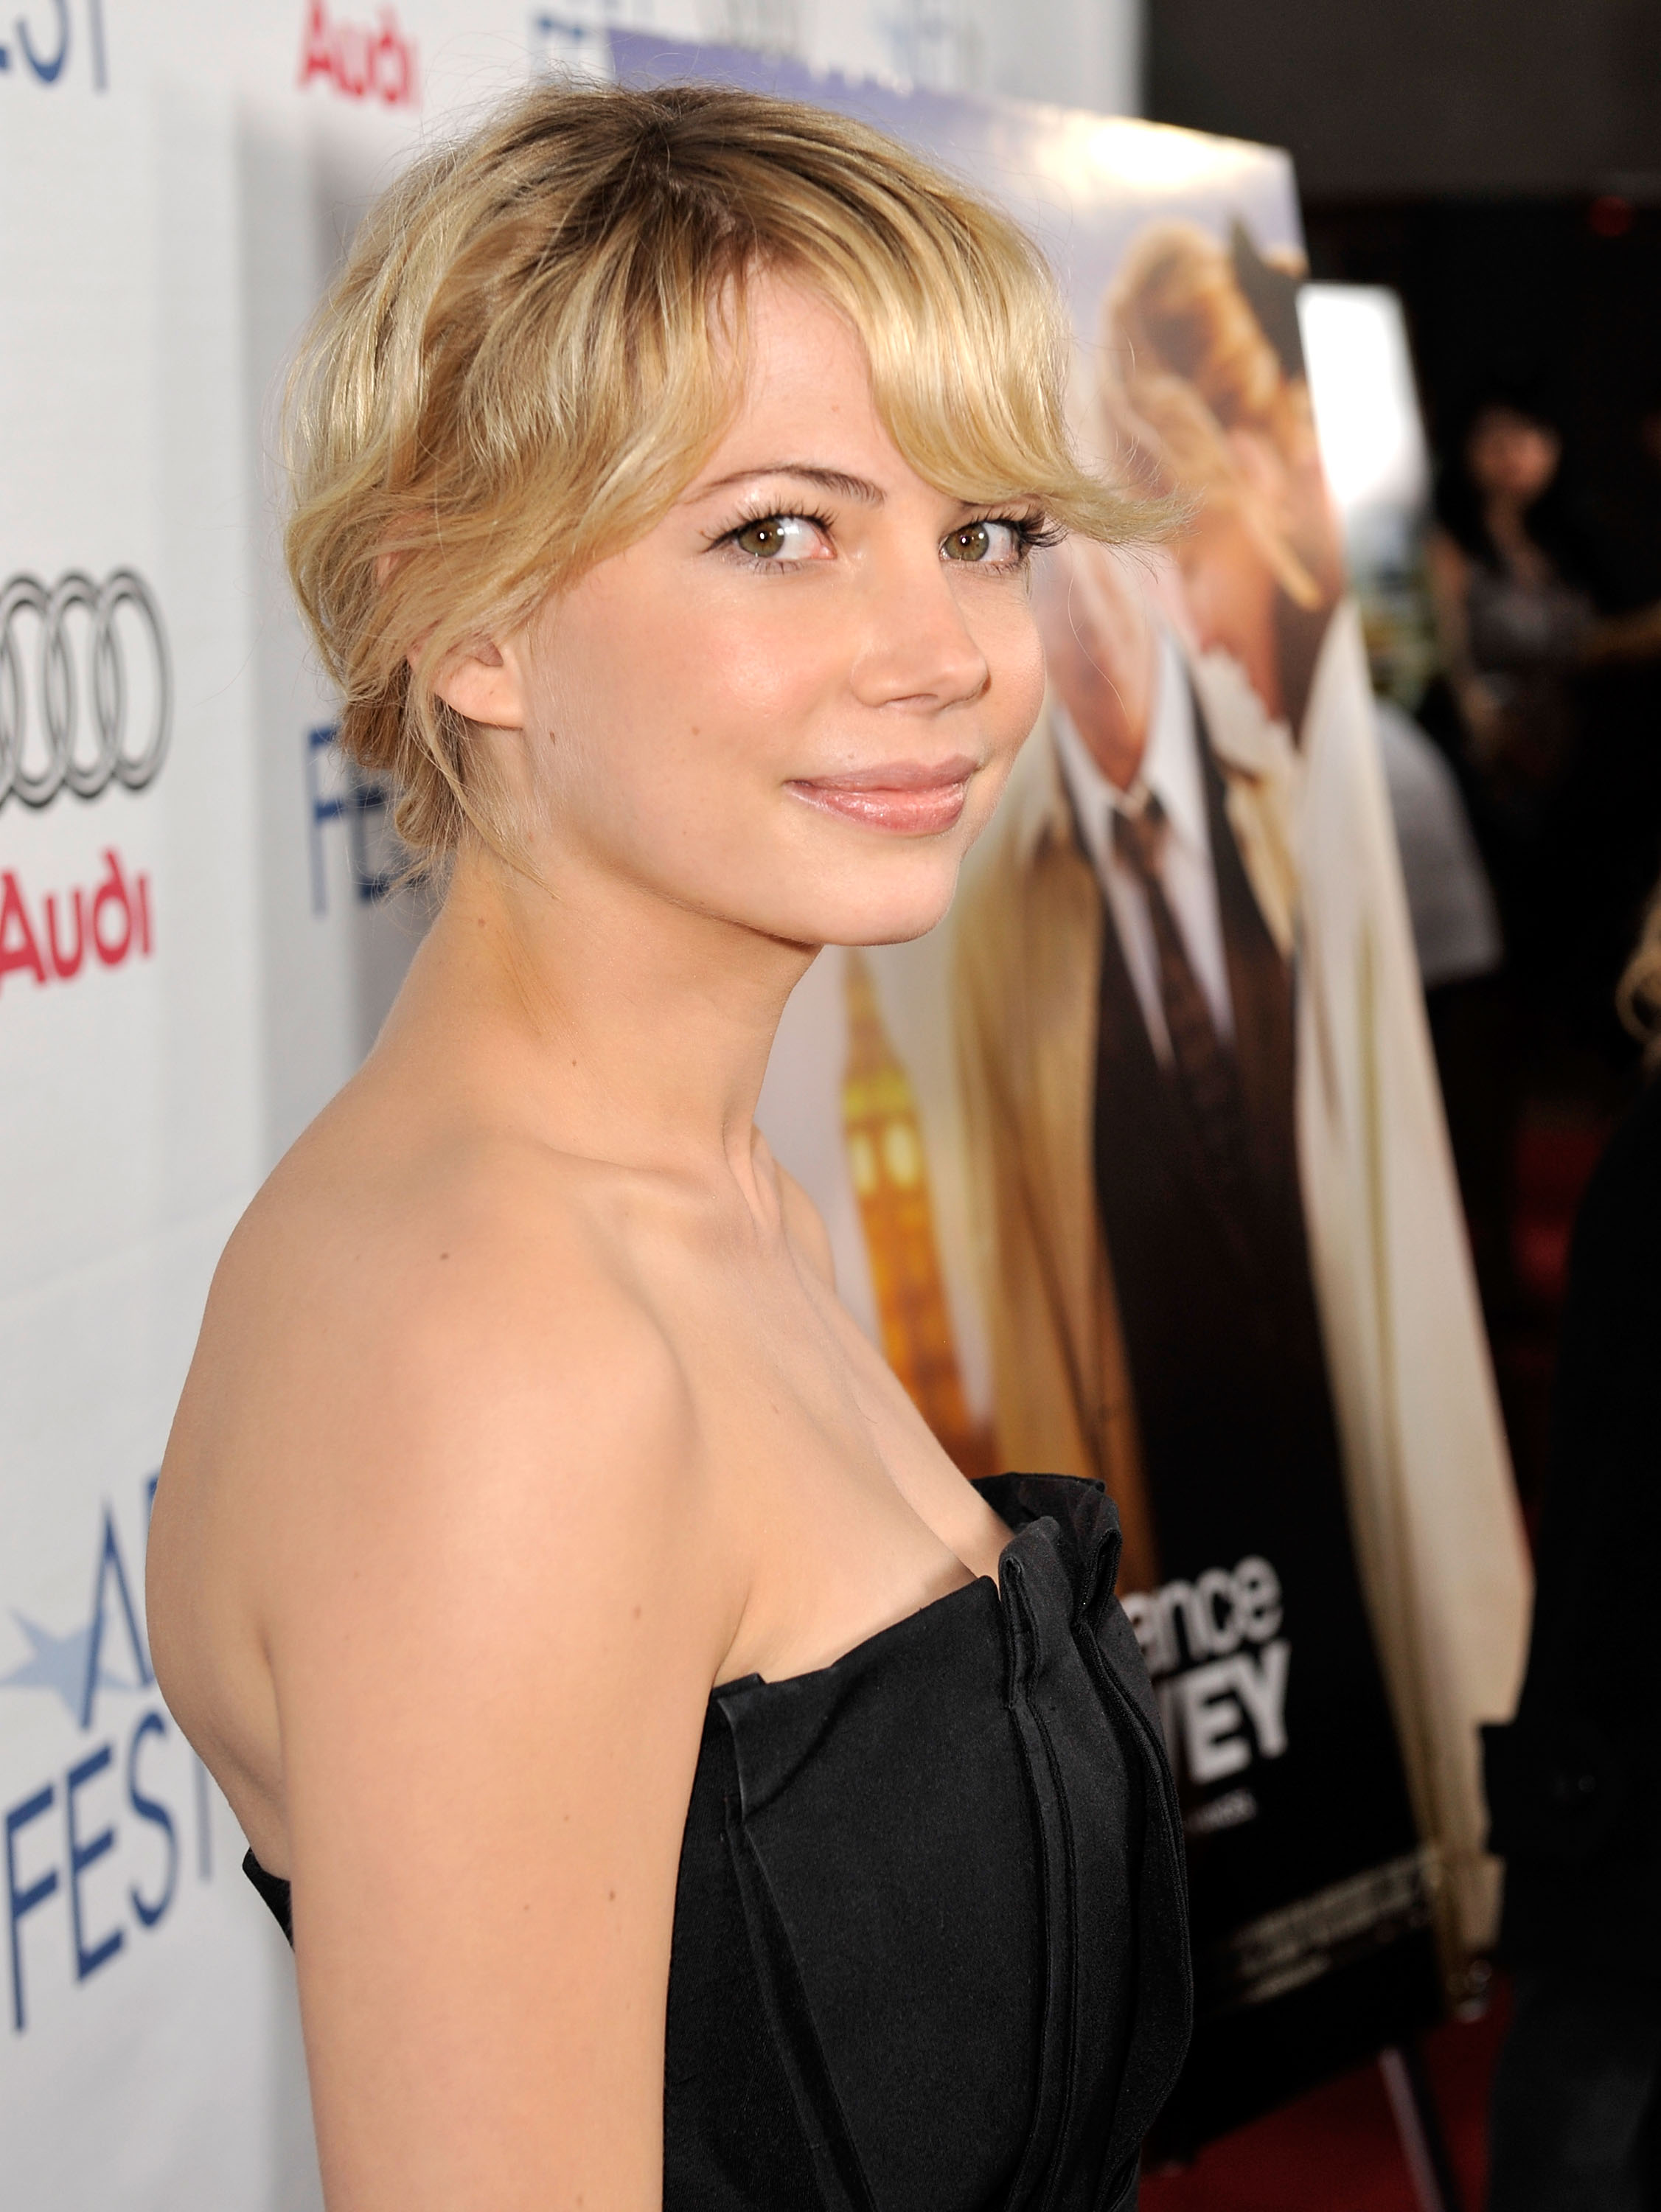 Michelle Williams Actress Photo 144 Of 349 Pics